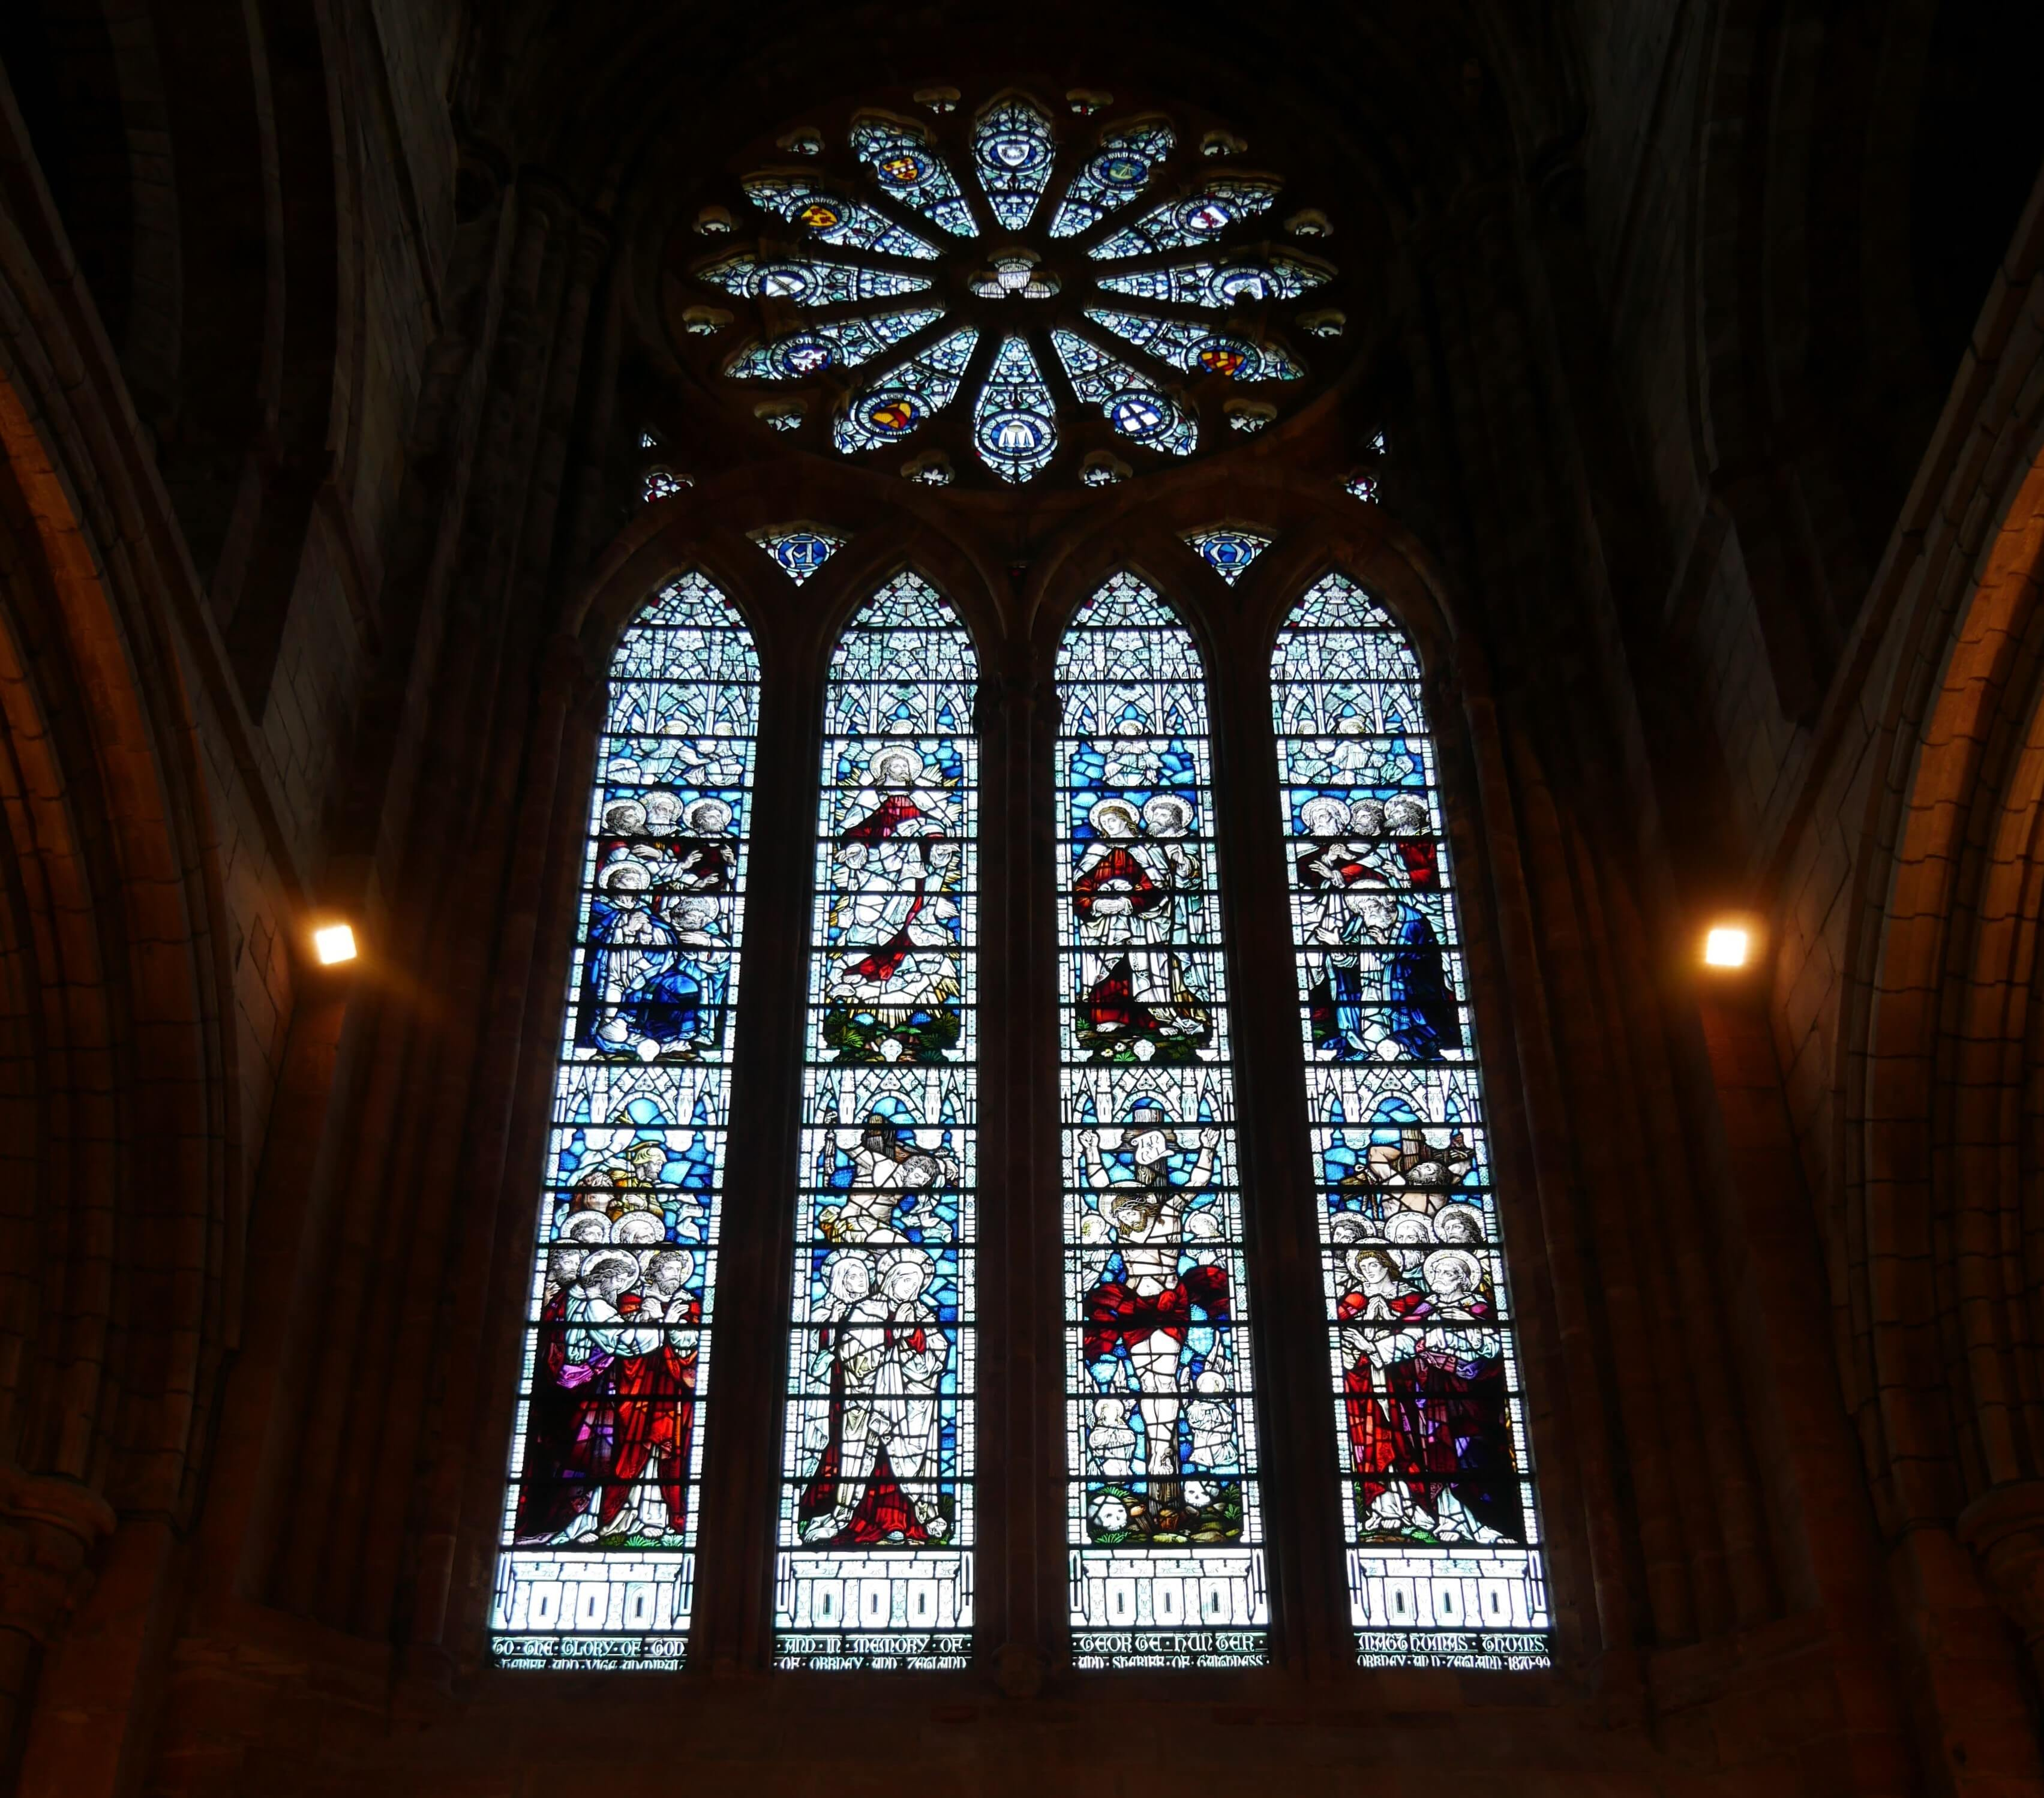 East window, stained glass, St Magnus Cathedral, Kirkwall, Orkney Islands, Scotland, UK